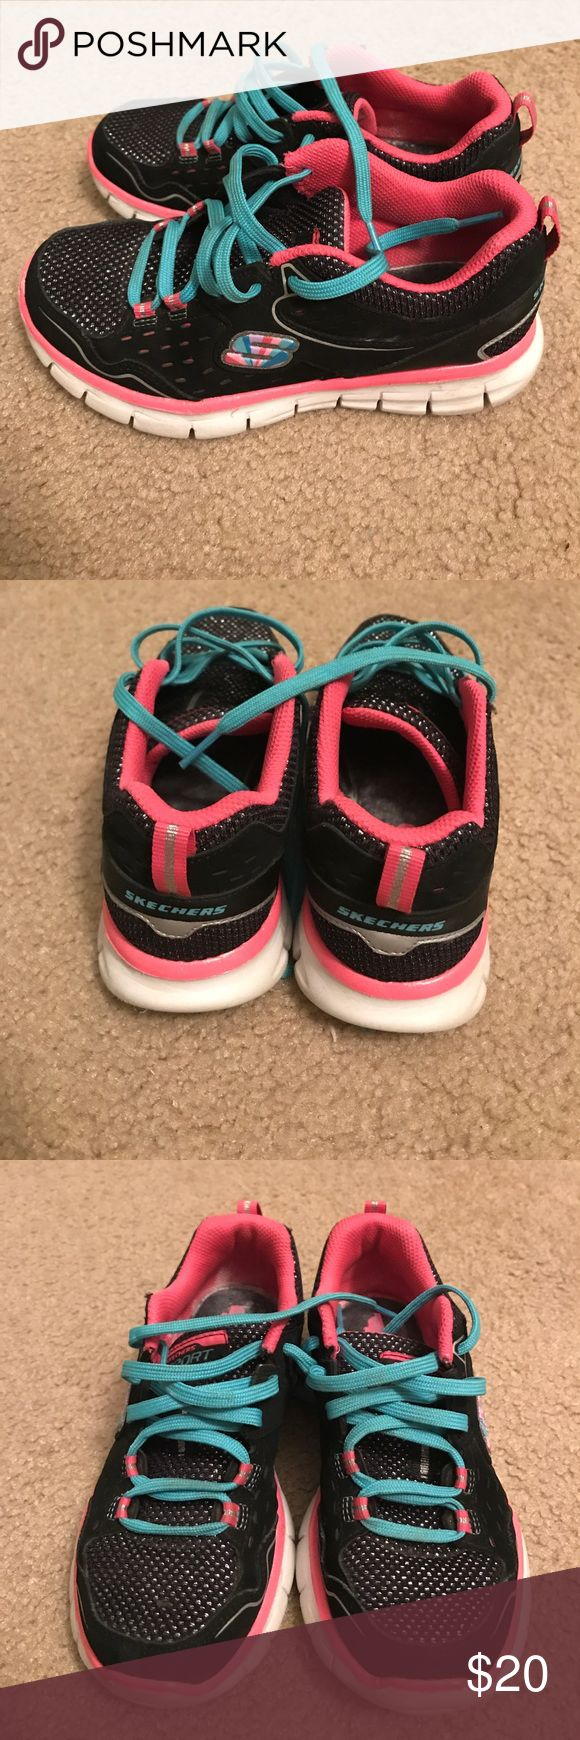 Sketchers Sneakers Girls black sparkle sneakers with pink outline act aqua shoelaces.  Great condition.  Memory foam.  Daughter grew out of them quickly.  Still a lot of life in them. Skechers Shoes Sneakers